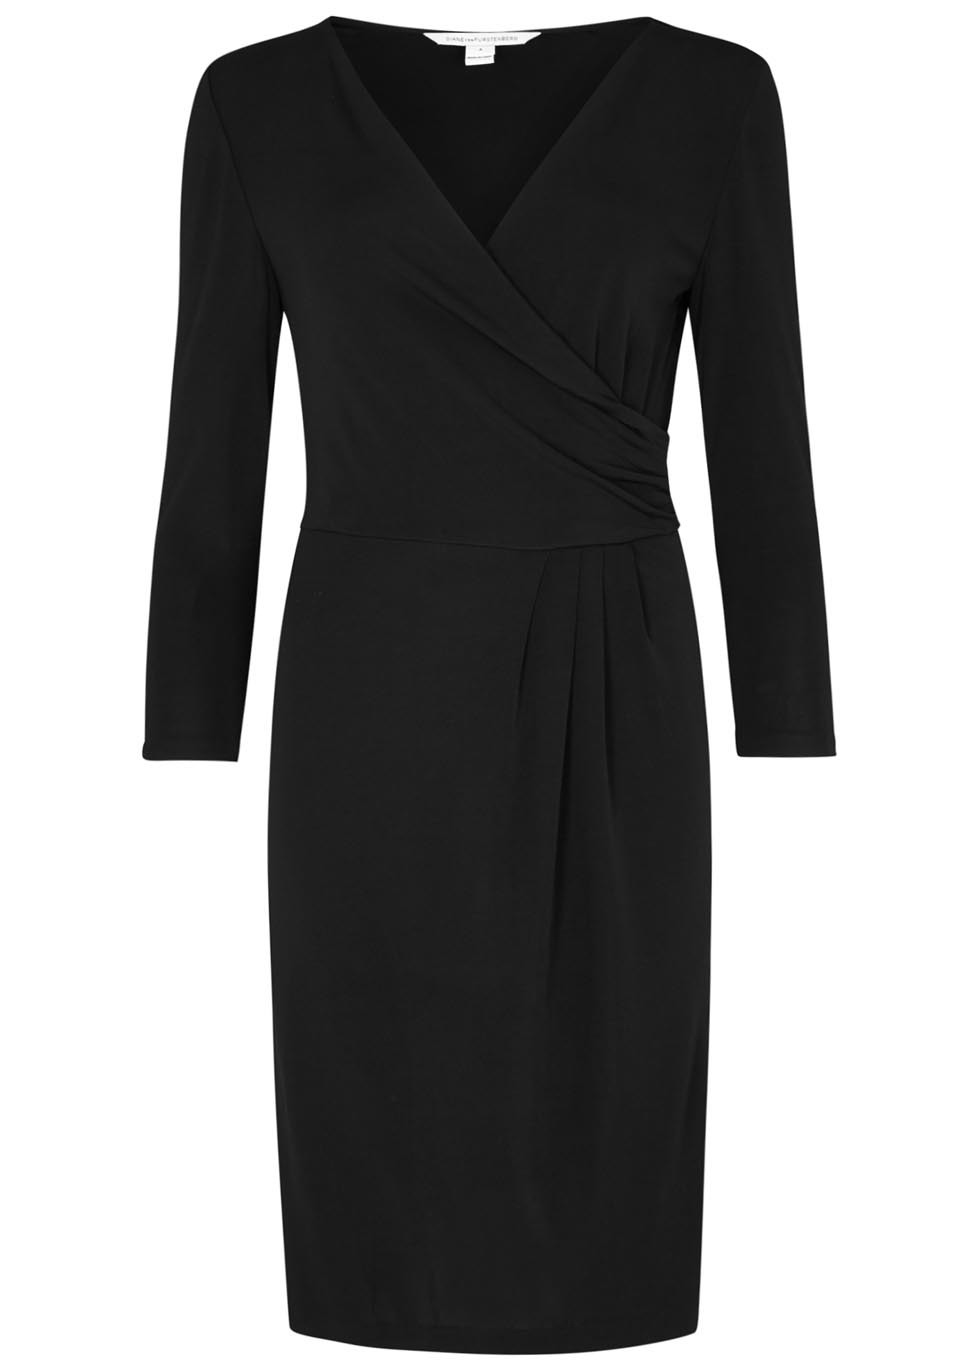 Calista Black Wrap Effect Jersey Dress - style: faux wrap/wrap; neckline: v-neck; pattern: plain; predominant colour: black; occasions: evening; length: just above the knee; fit: body skimming; fibres: viscose/rayon - 100%; sleeve length: 3/4 length; sleeve style: standard; pattern type: fabric; texture group: jersey - stretchy/drapey; season: s/s 2016; wardrobe: event